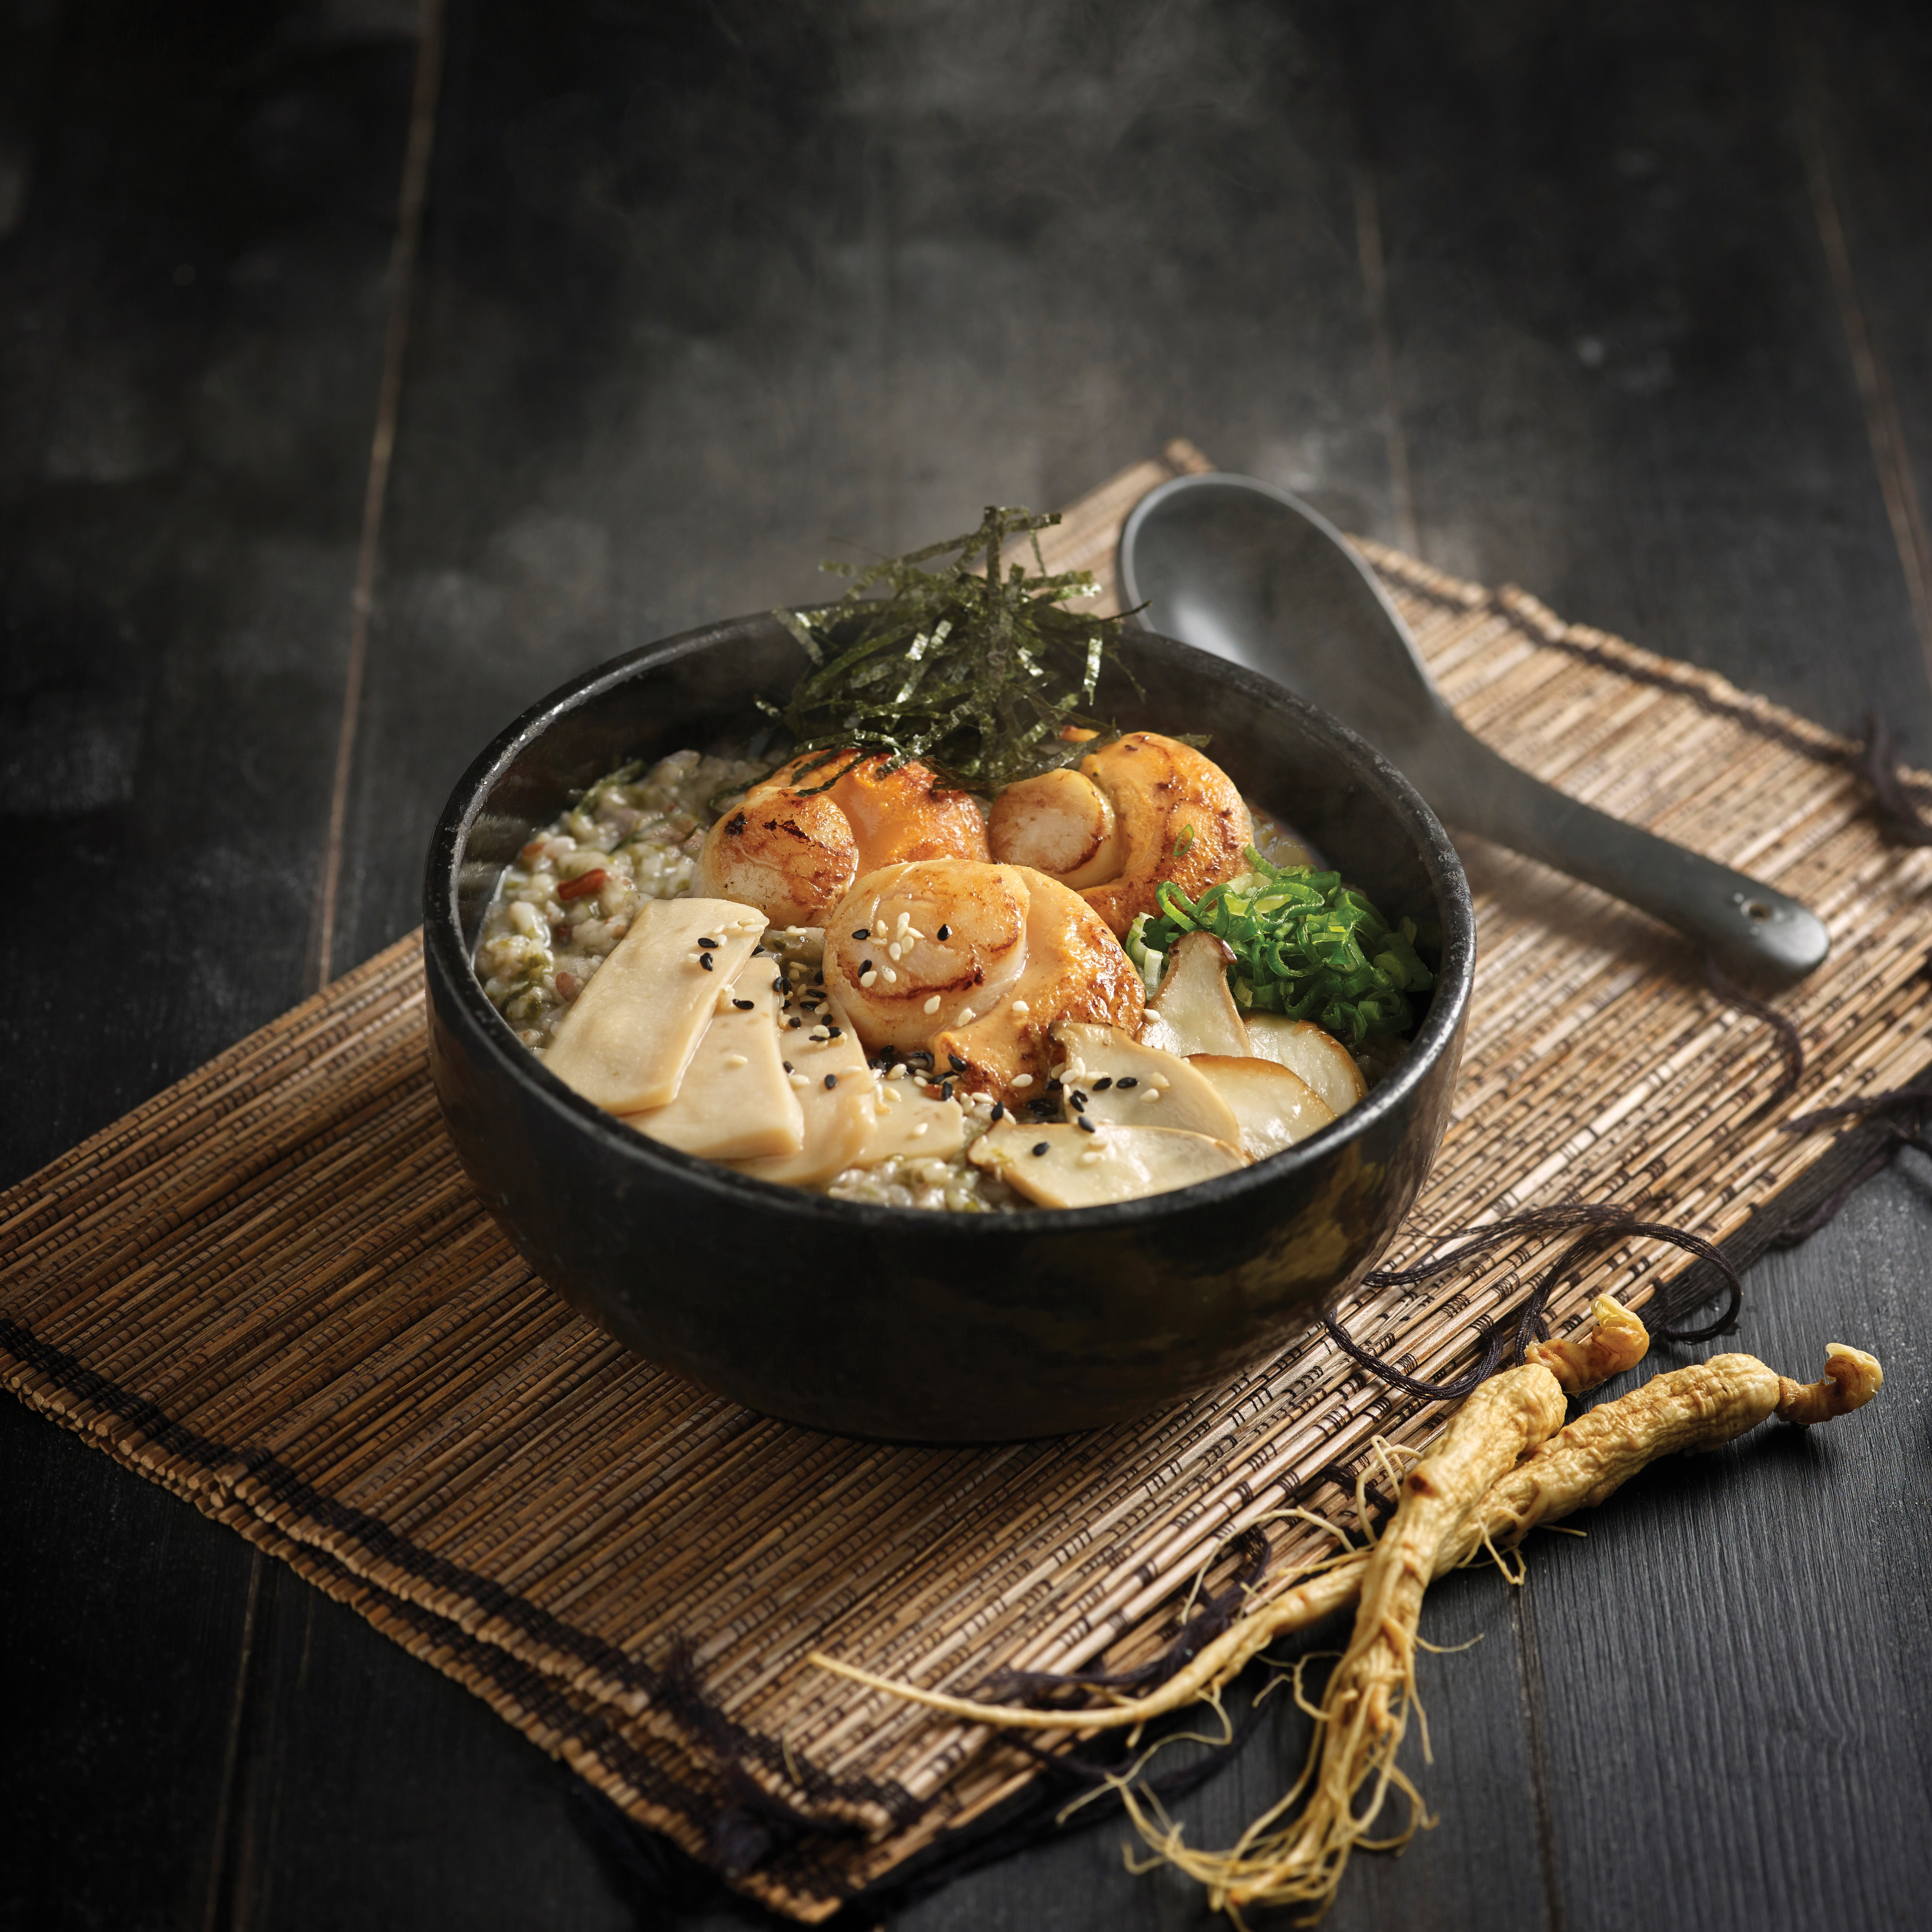 EDIT-Scallops-&-Sliced-Abalone-Ginseng-Energy-Booster-Porridge_800px x 800px